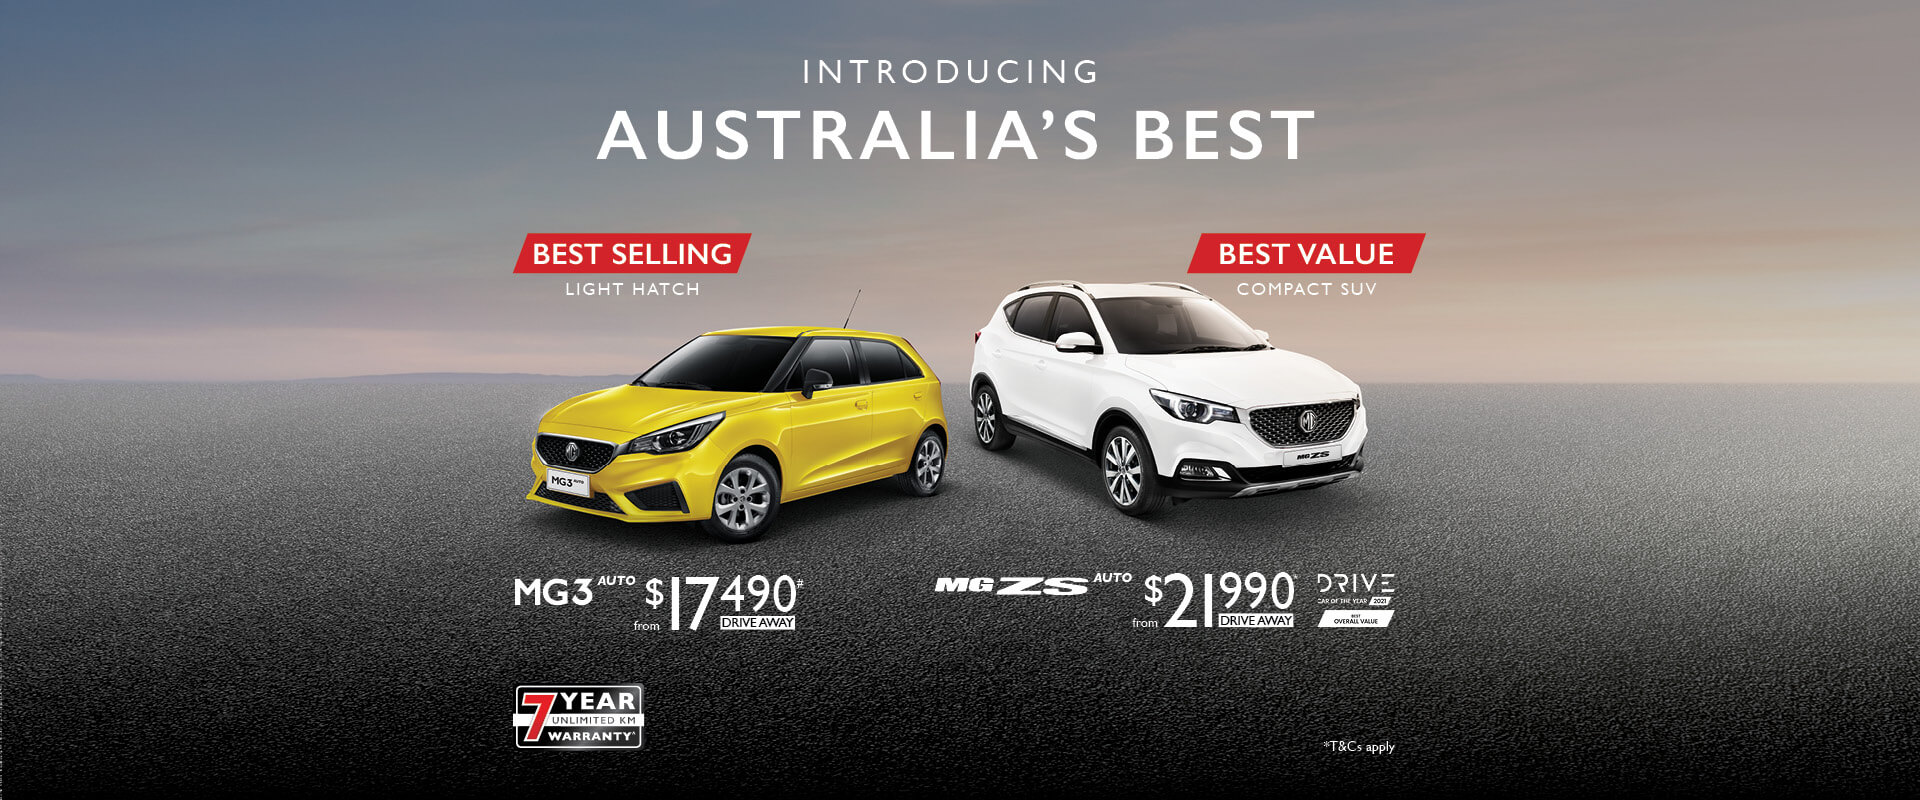 Introducing Australia's Best. MG3 Auto and MG ZS Auto